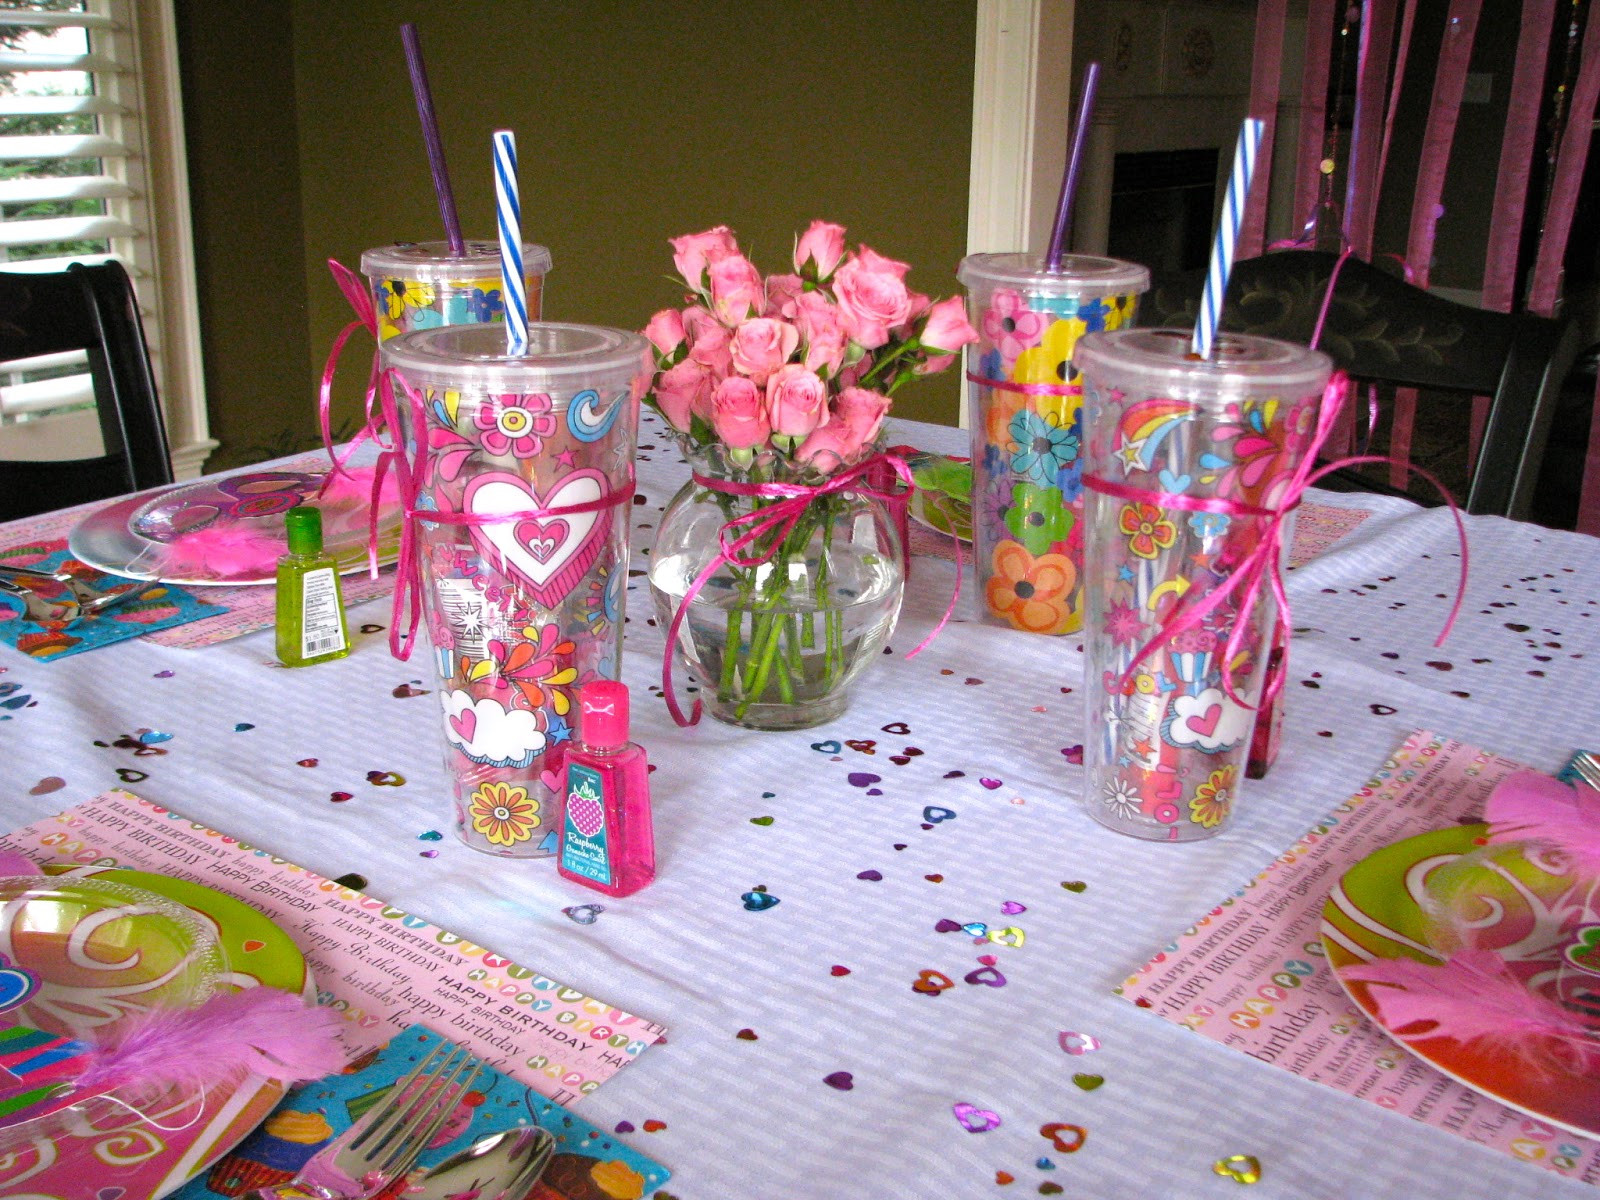 Best ideas about Girls Birthday Party . Save or Pin HomeMadeville Your Place for HomeMade Inspiration Girl s Now.